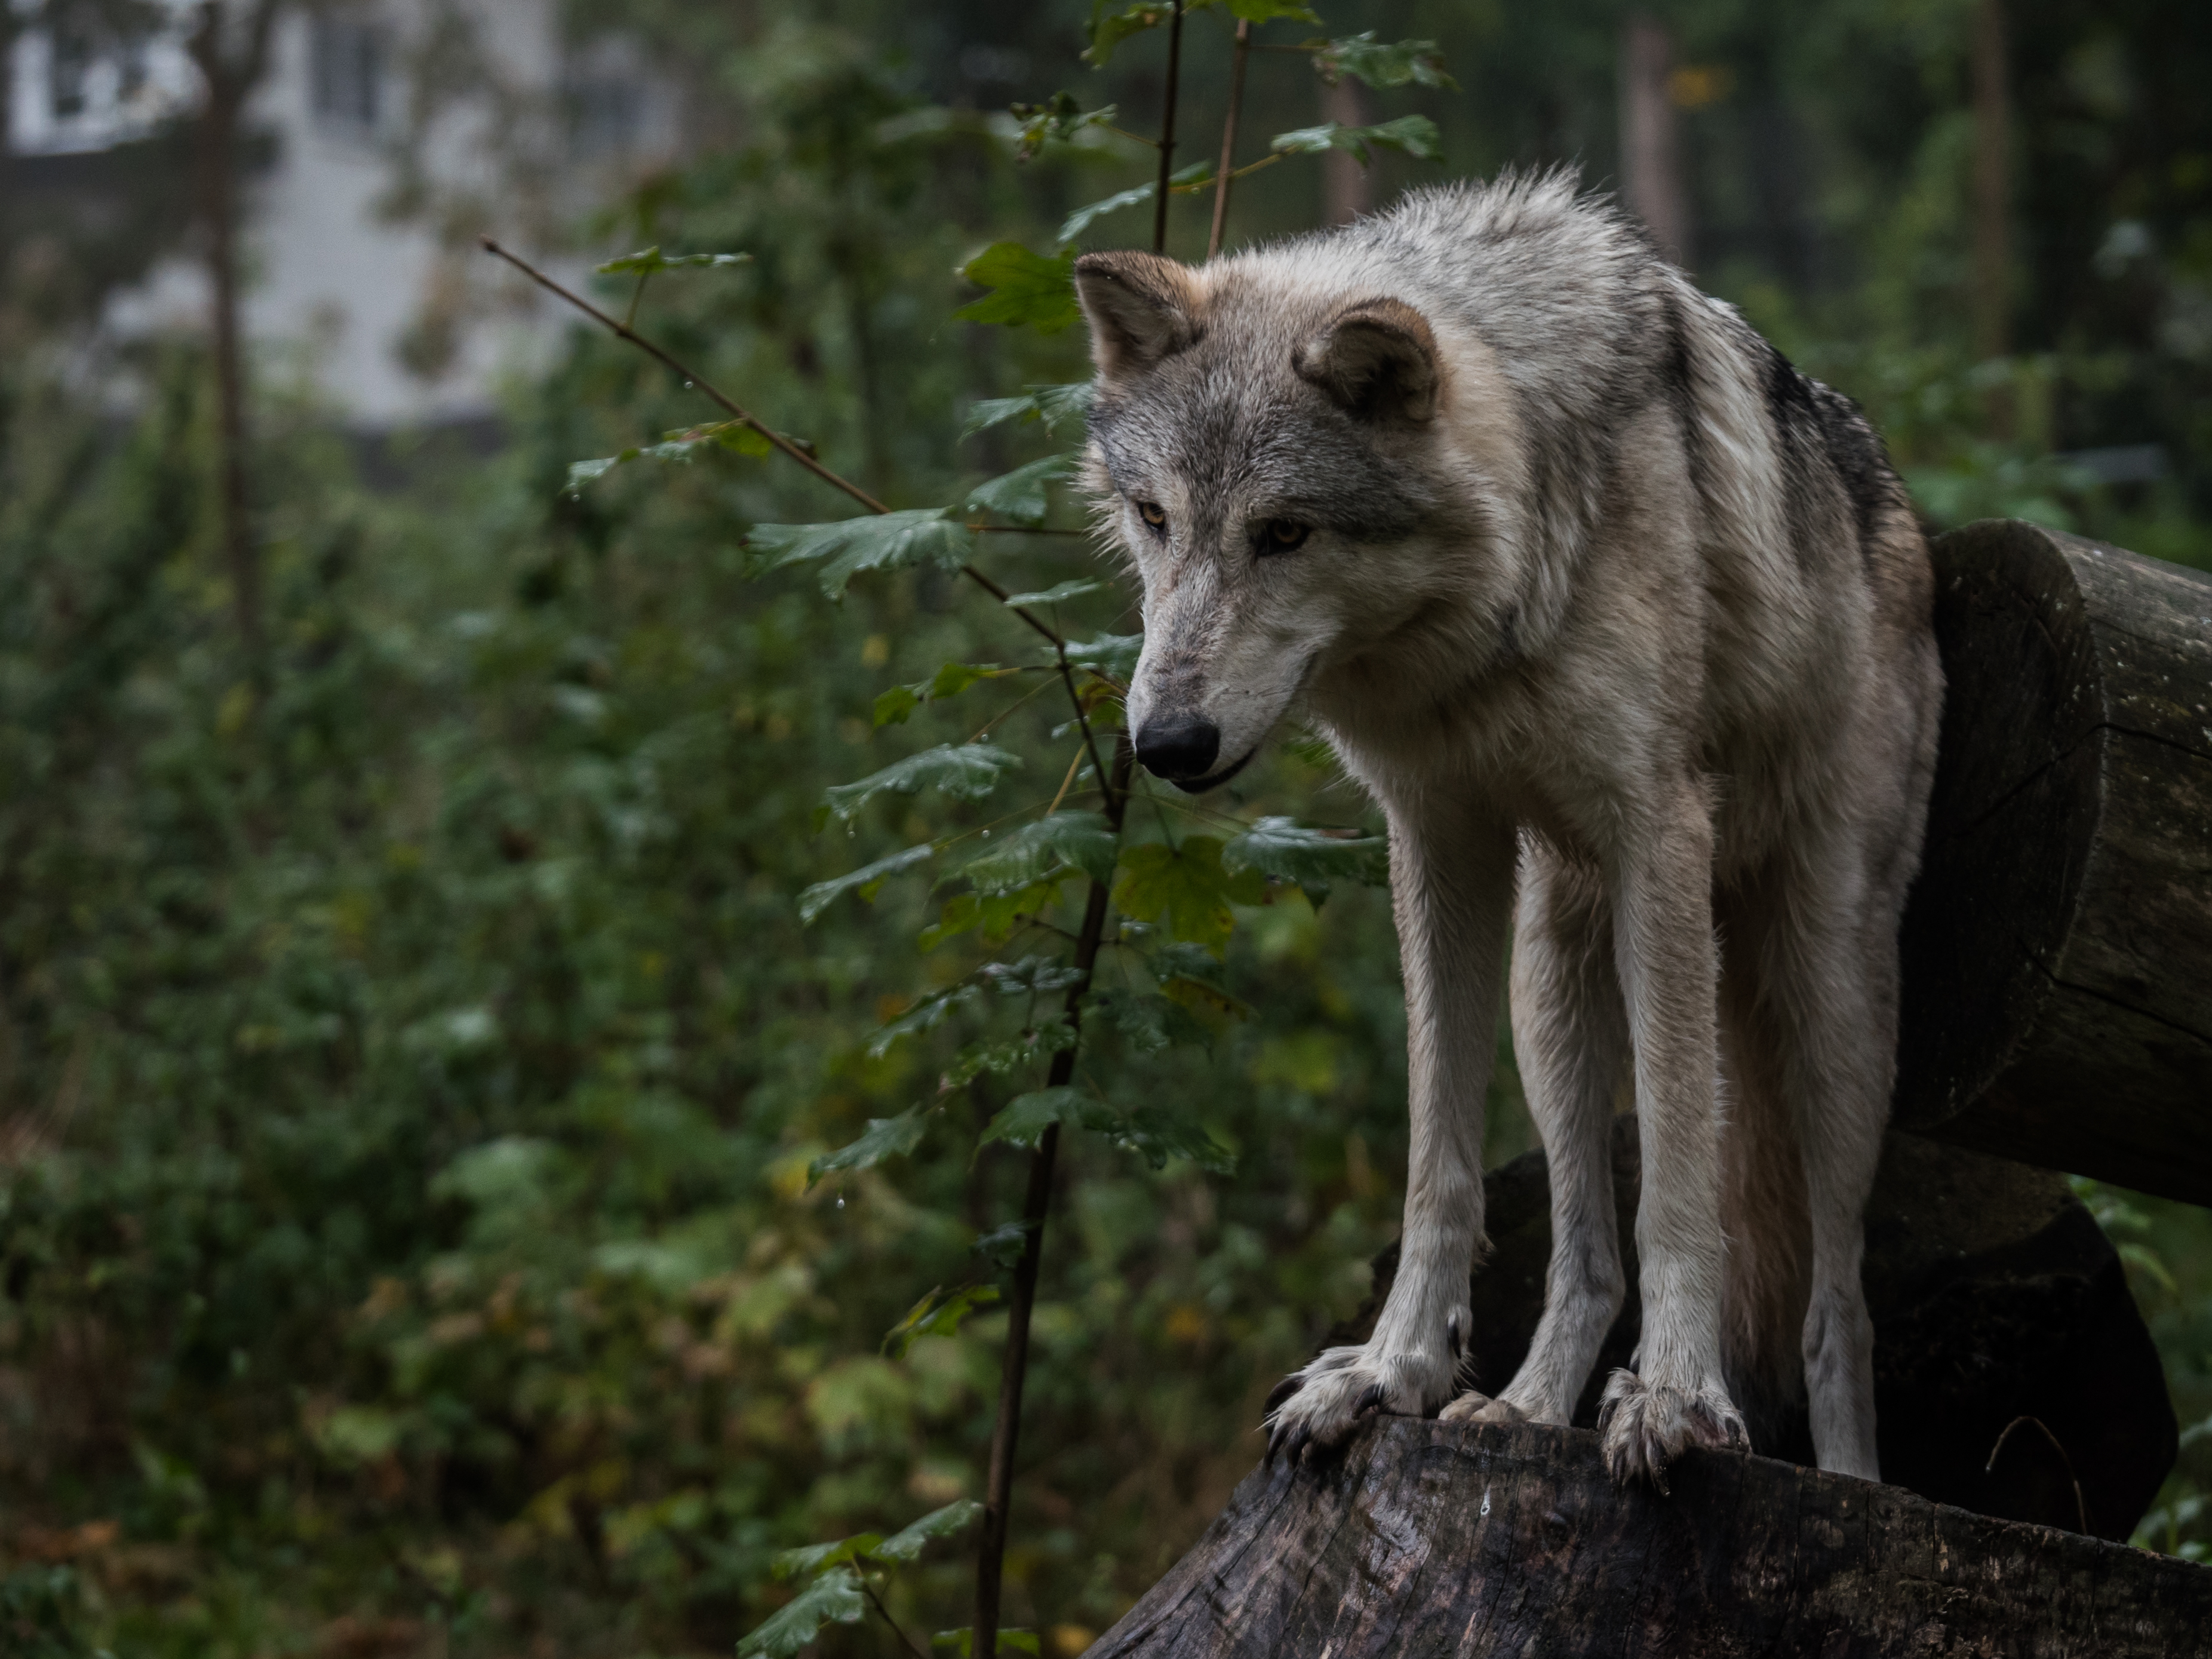 130466 download wallpaper Animals, Wolf, Predator, Grey, Leaves screensavers and pictures for free